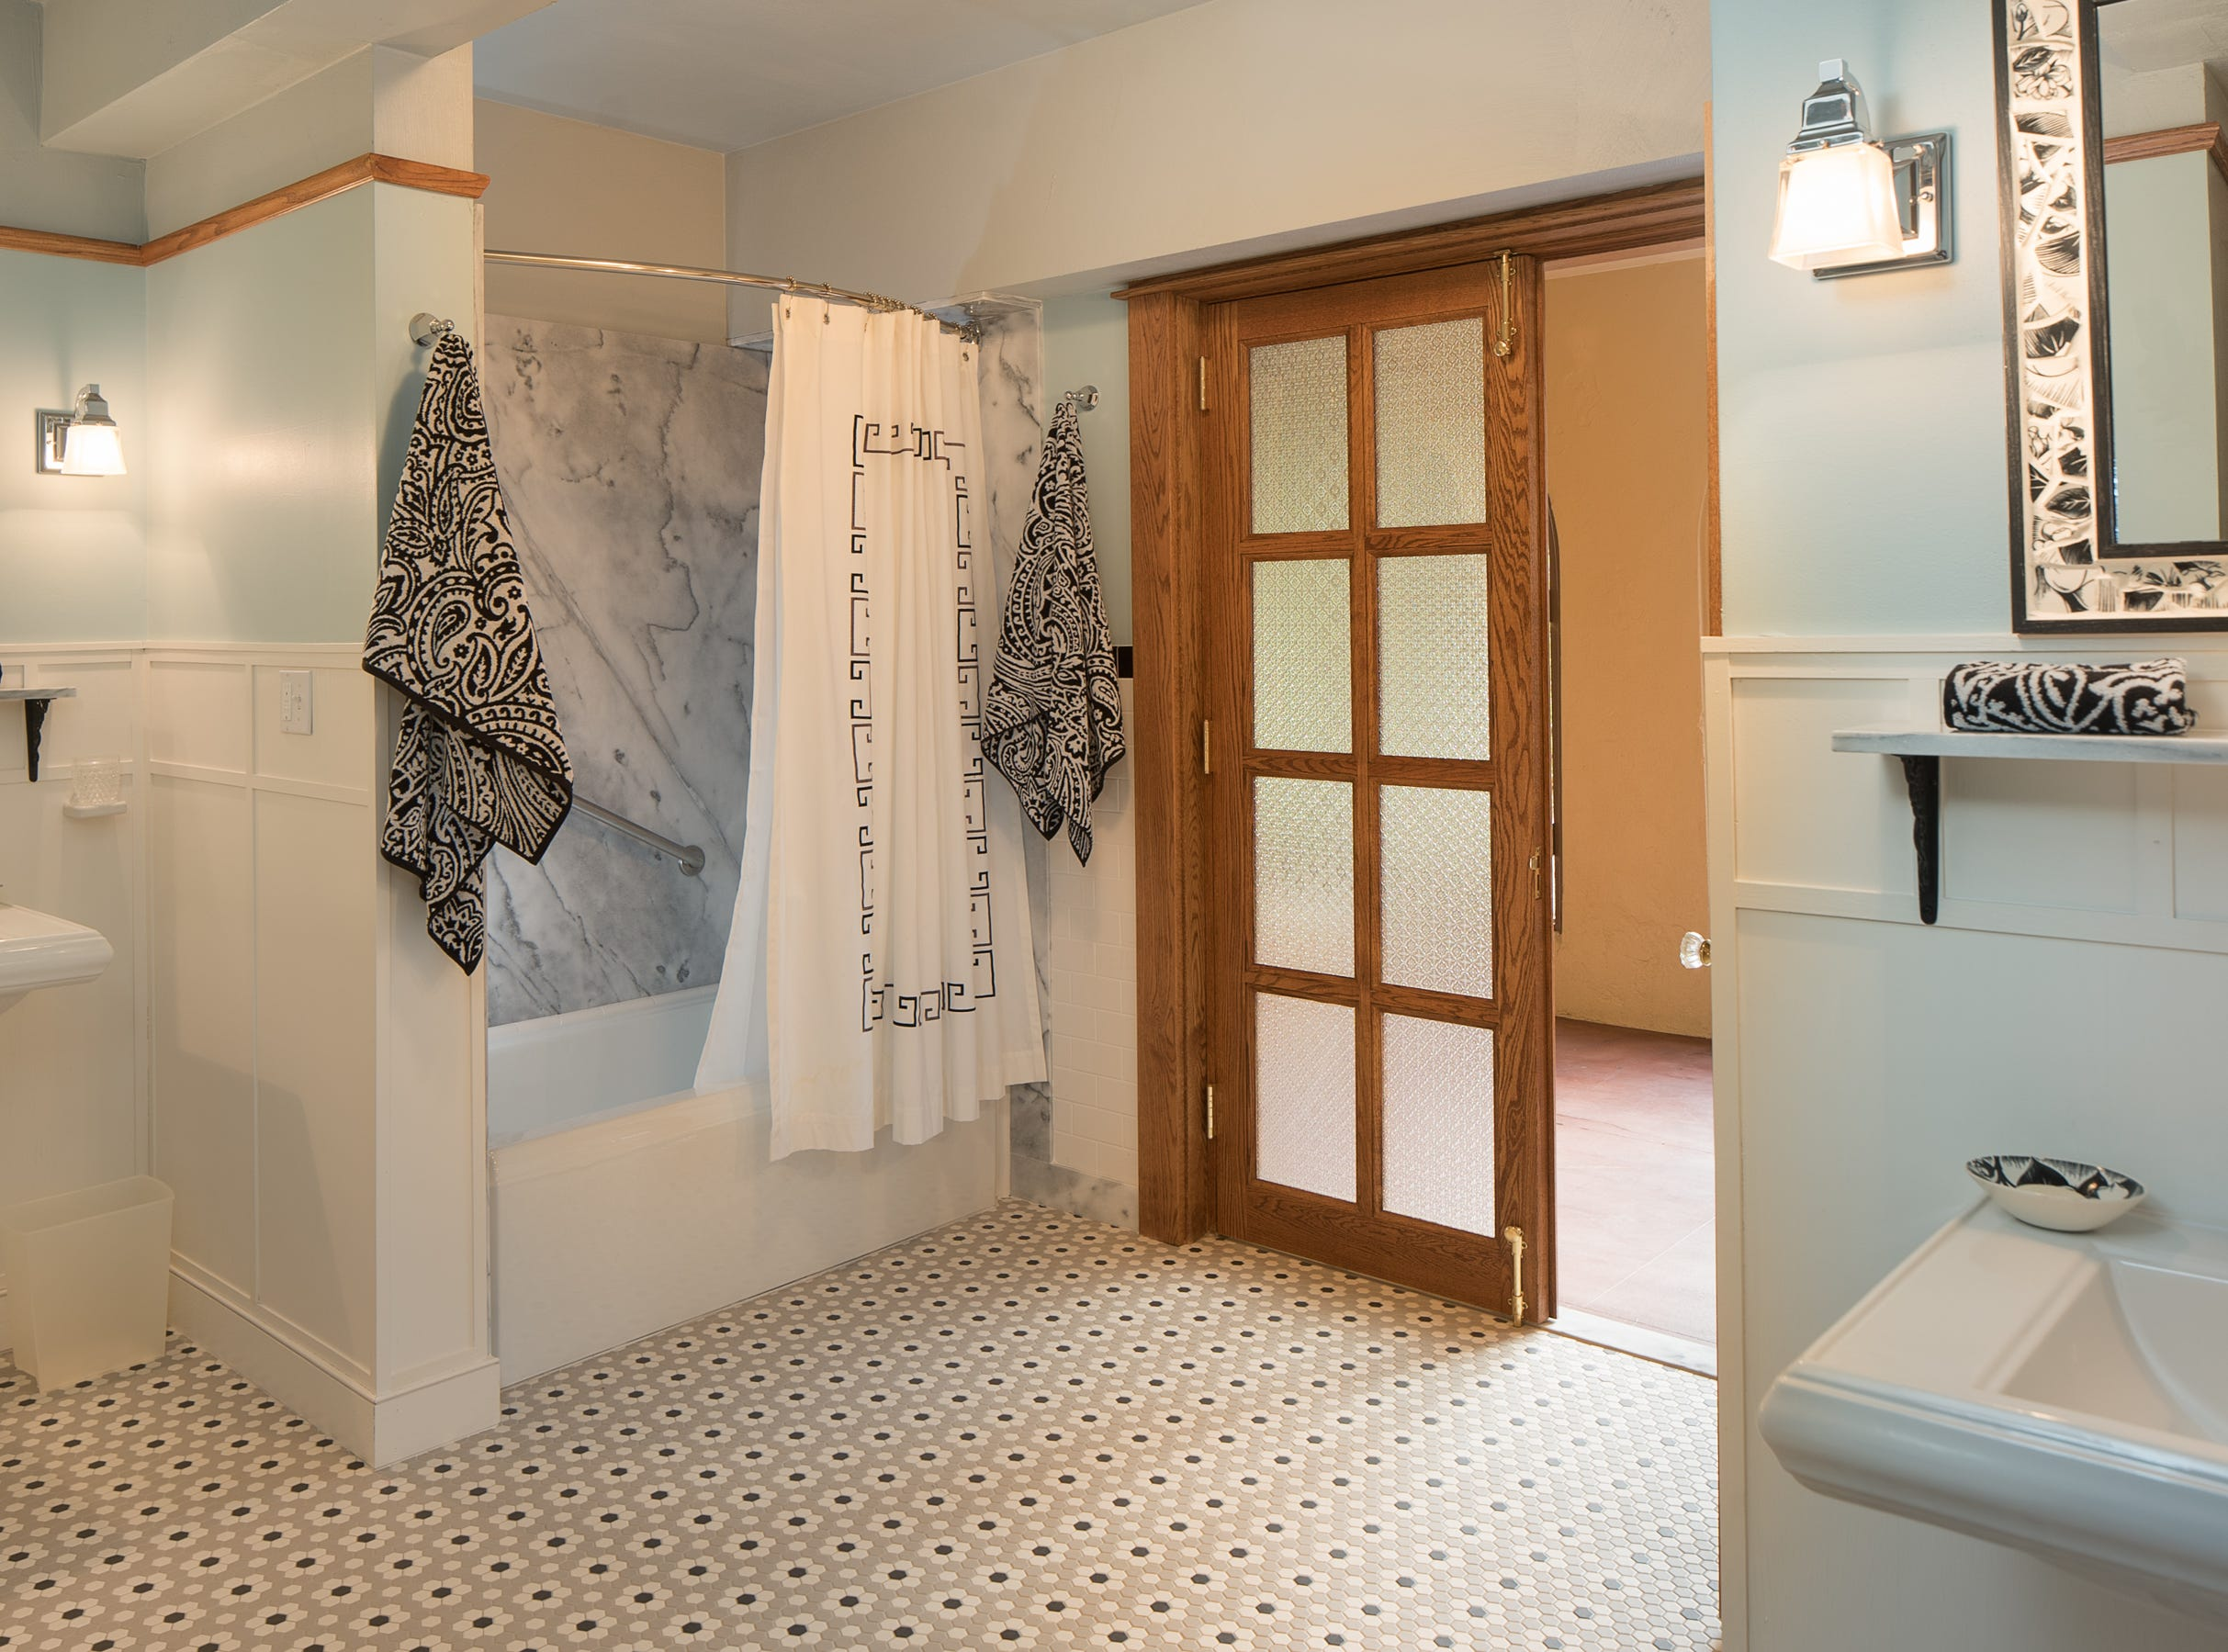 The bathroom for the king bedroom No. 2 is seen at the 100-year-old former Little Daisy Hotel in Jerome, which was later turned into a single-family home and is now on the market.